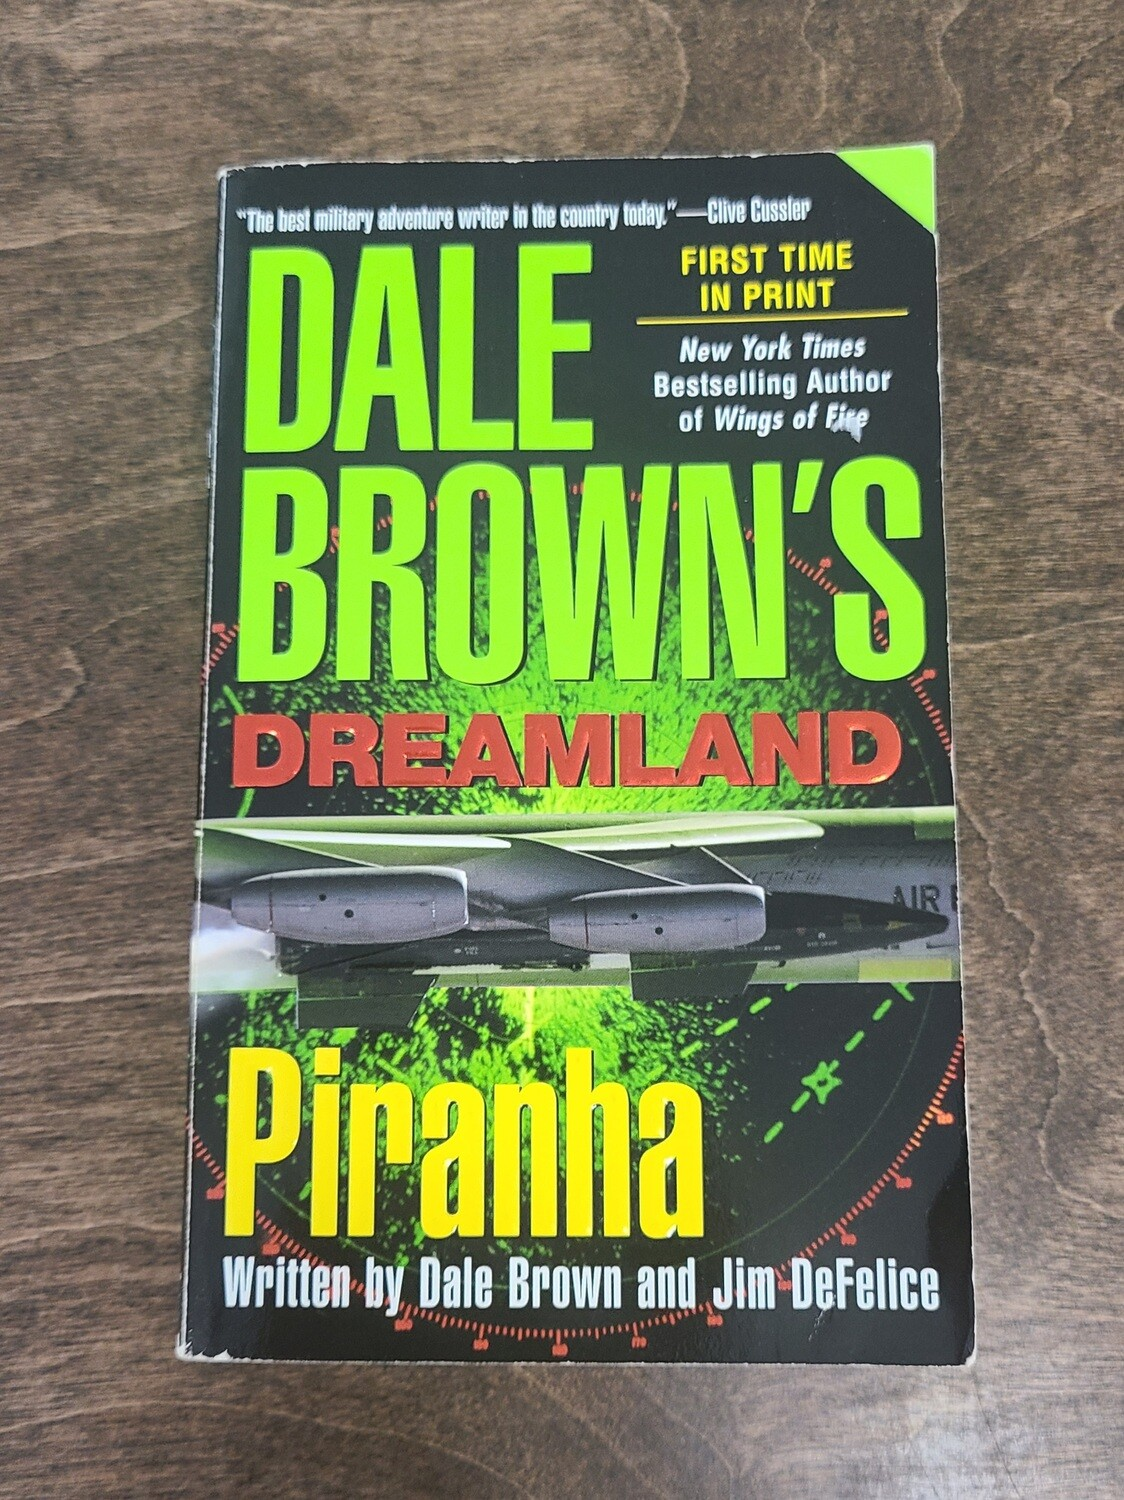 Dale Brown's Dreamland: Piranha by Dale Brown and Jim DeFelice